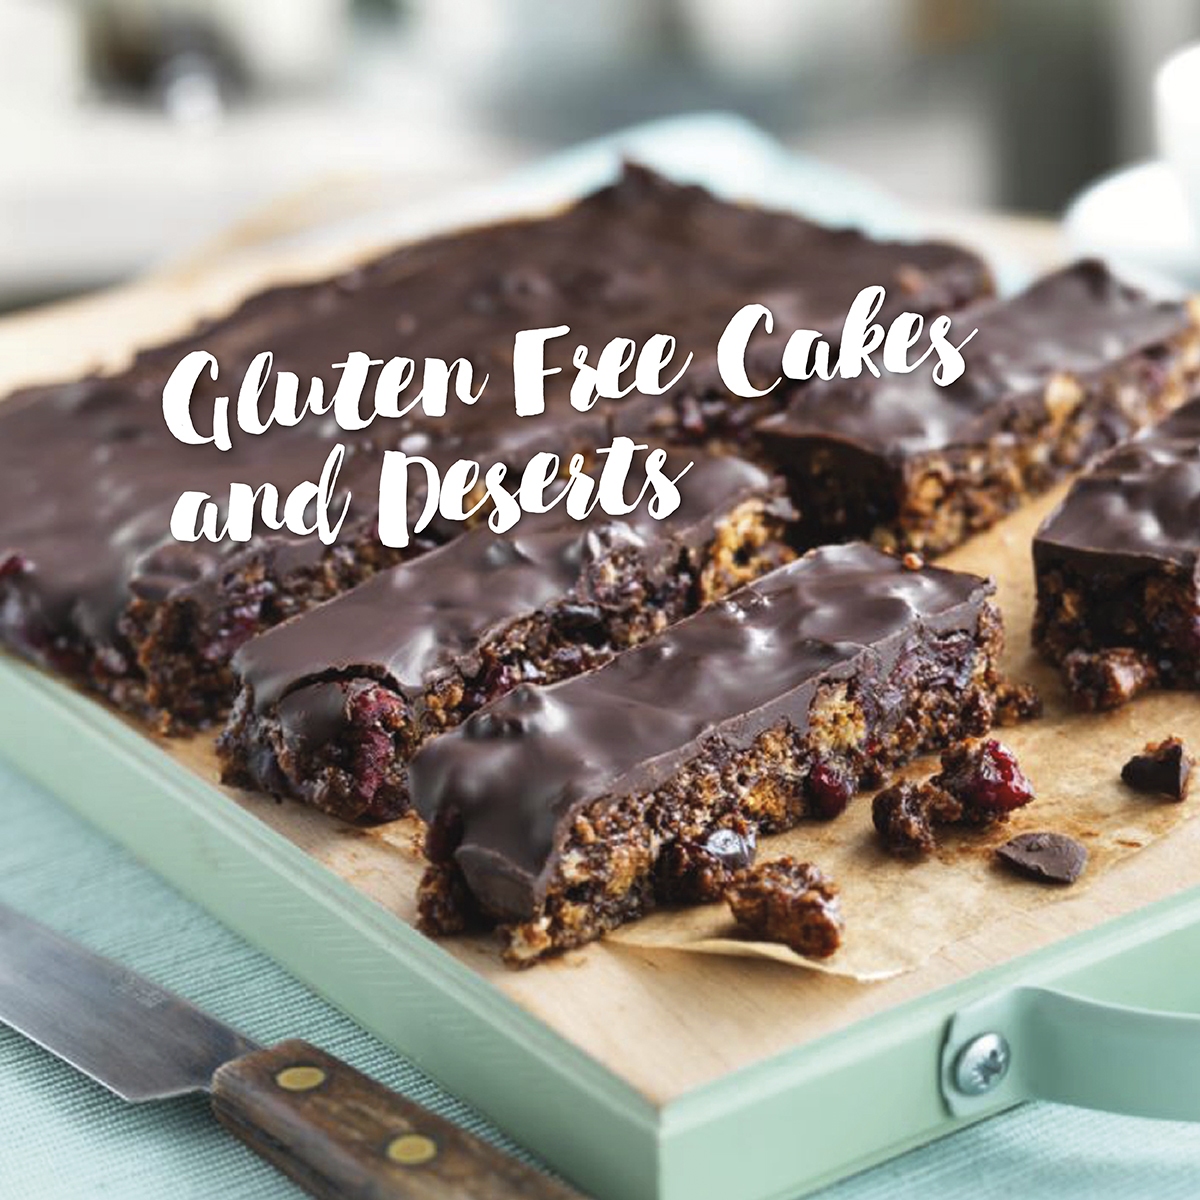 Gluten Free Cakes and Deserts